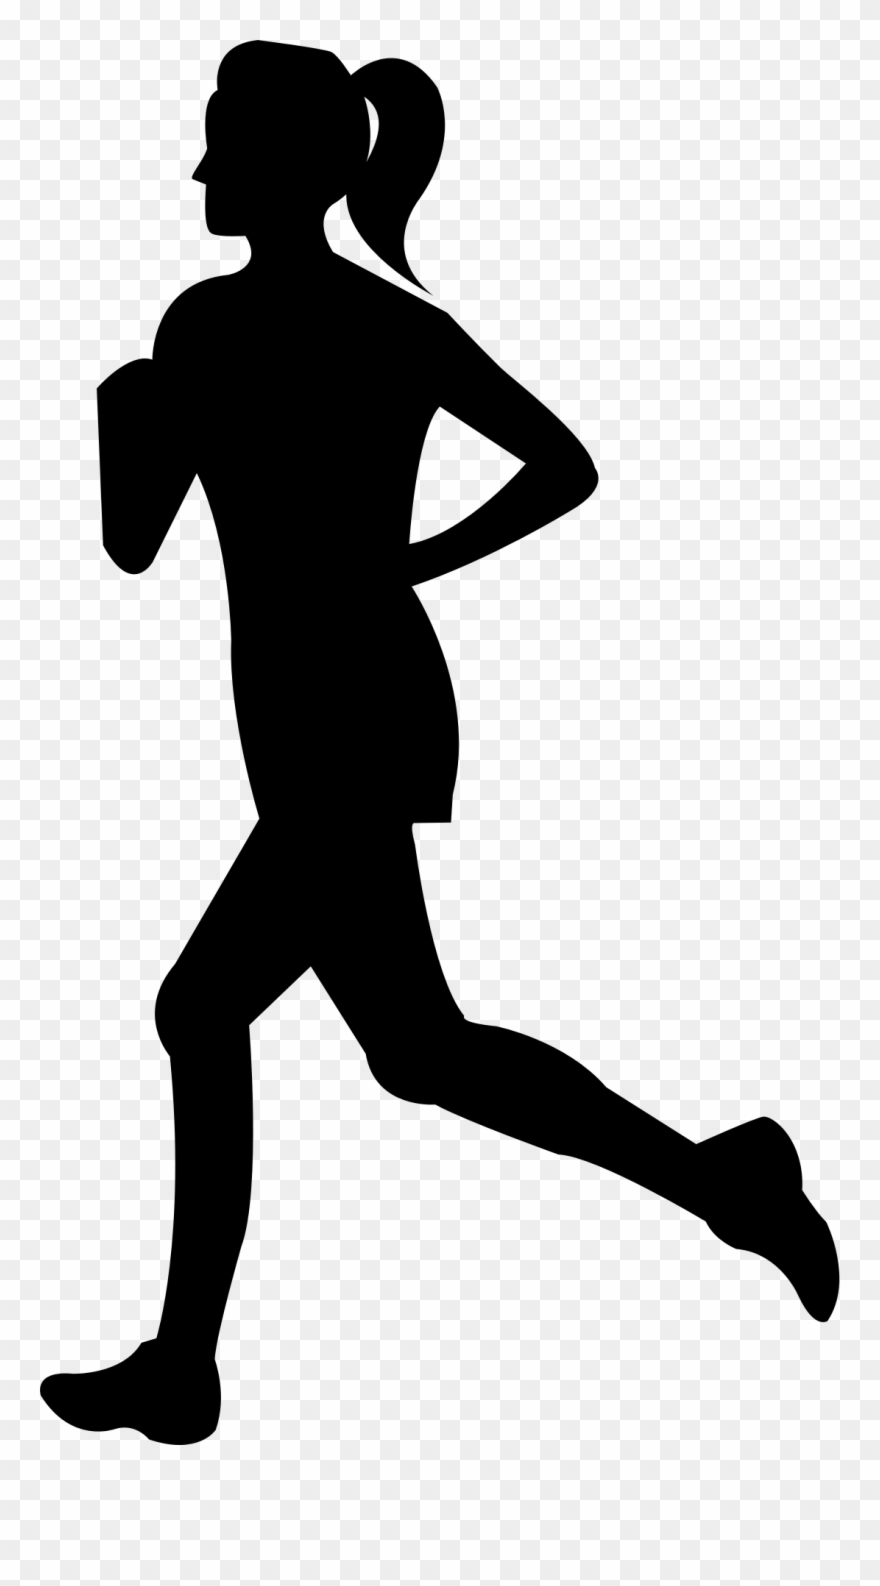 Free Clip Art Of Person Running Clipart Silhouette - Woman ...